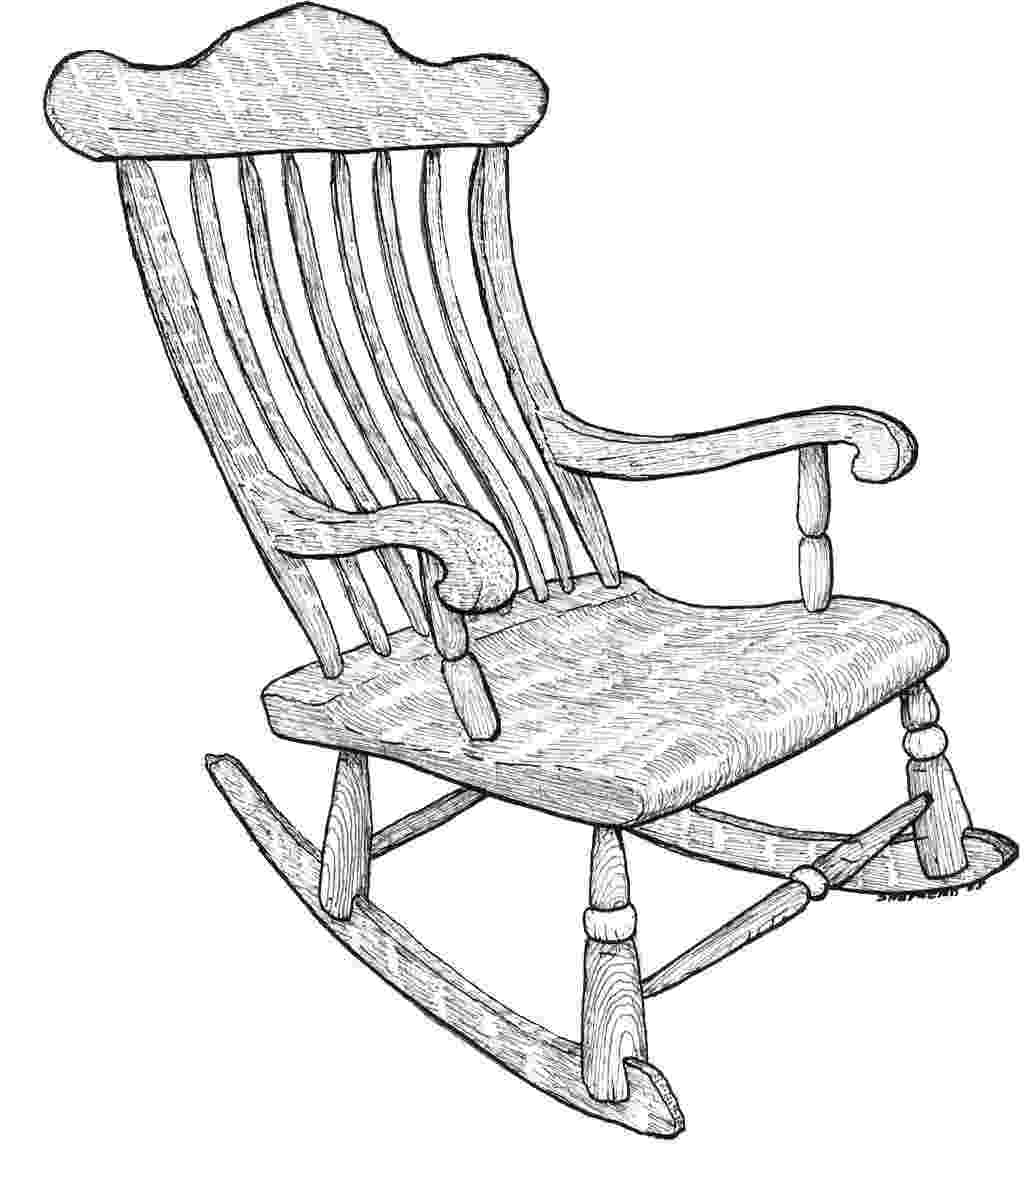 color ideas painting old chairs rocking chair drawing google search rocking chair color ideas old chairs painting